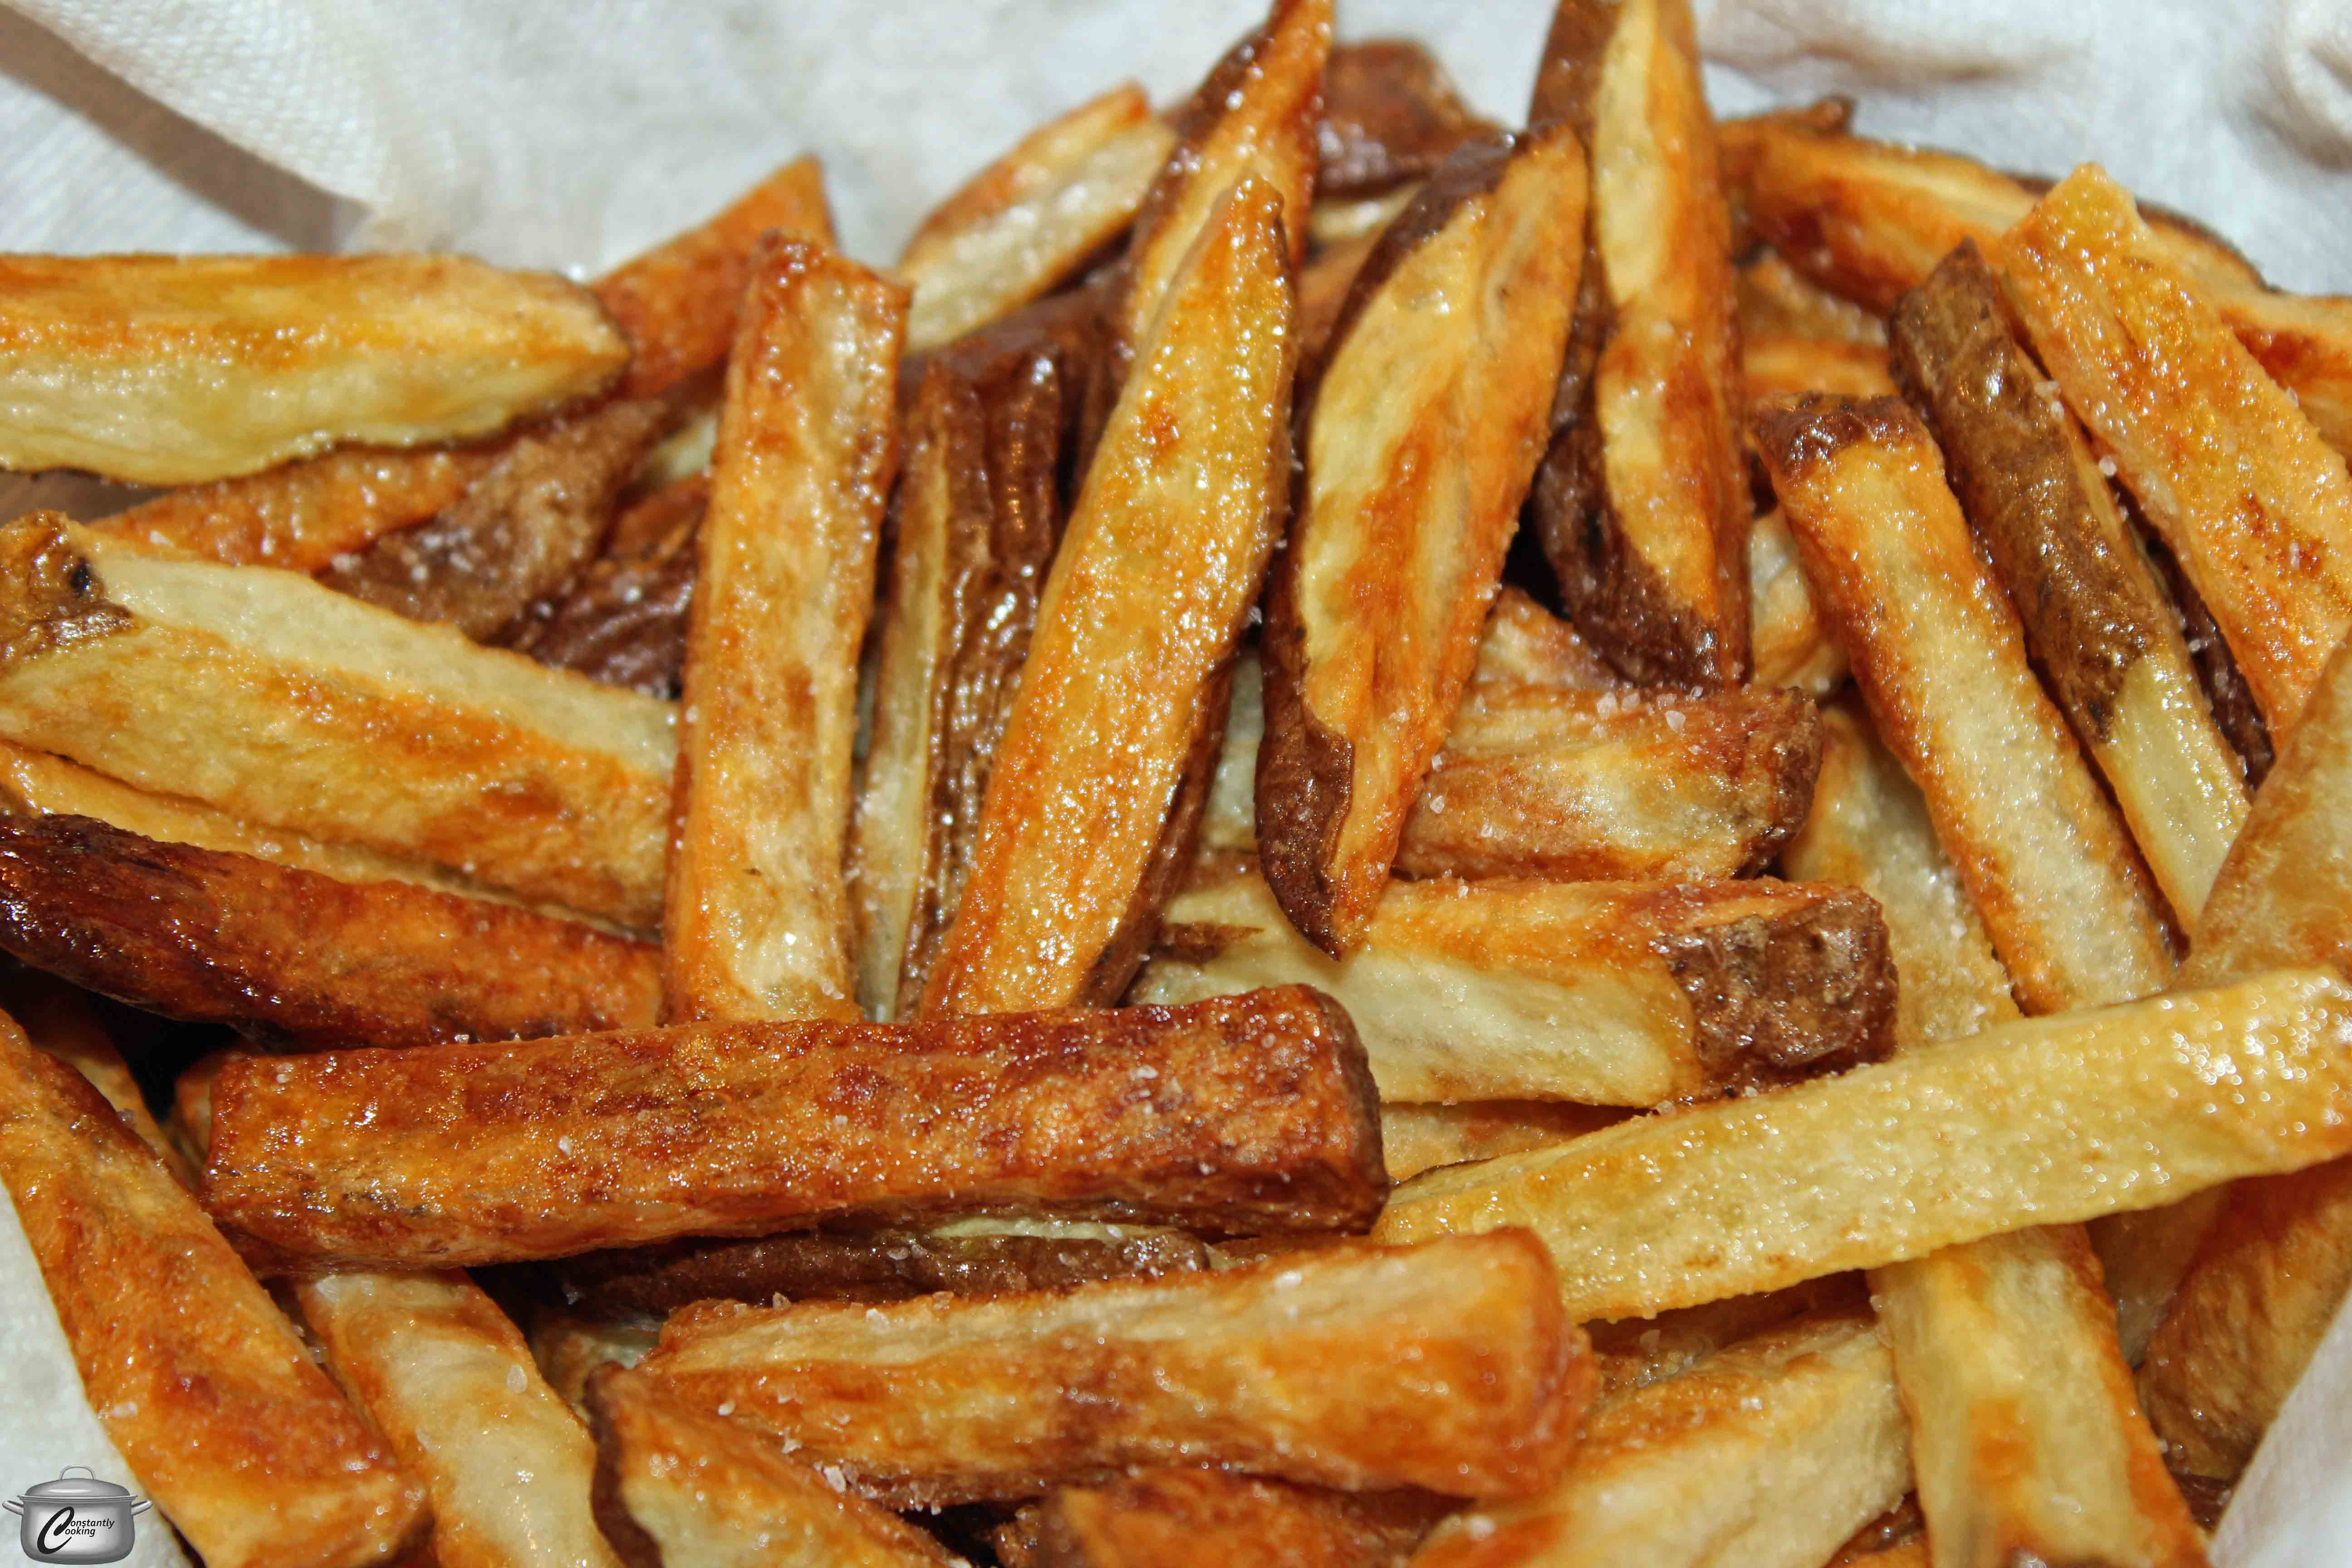 For the best oven-baked fries, parboiling them in a water and vinegar ...